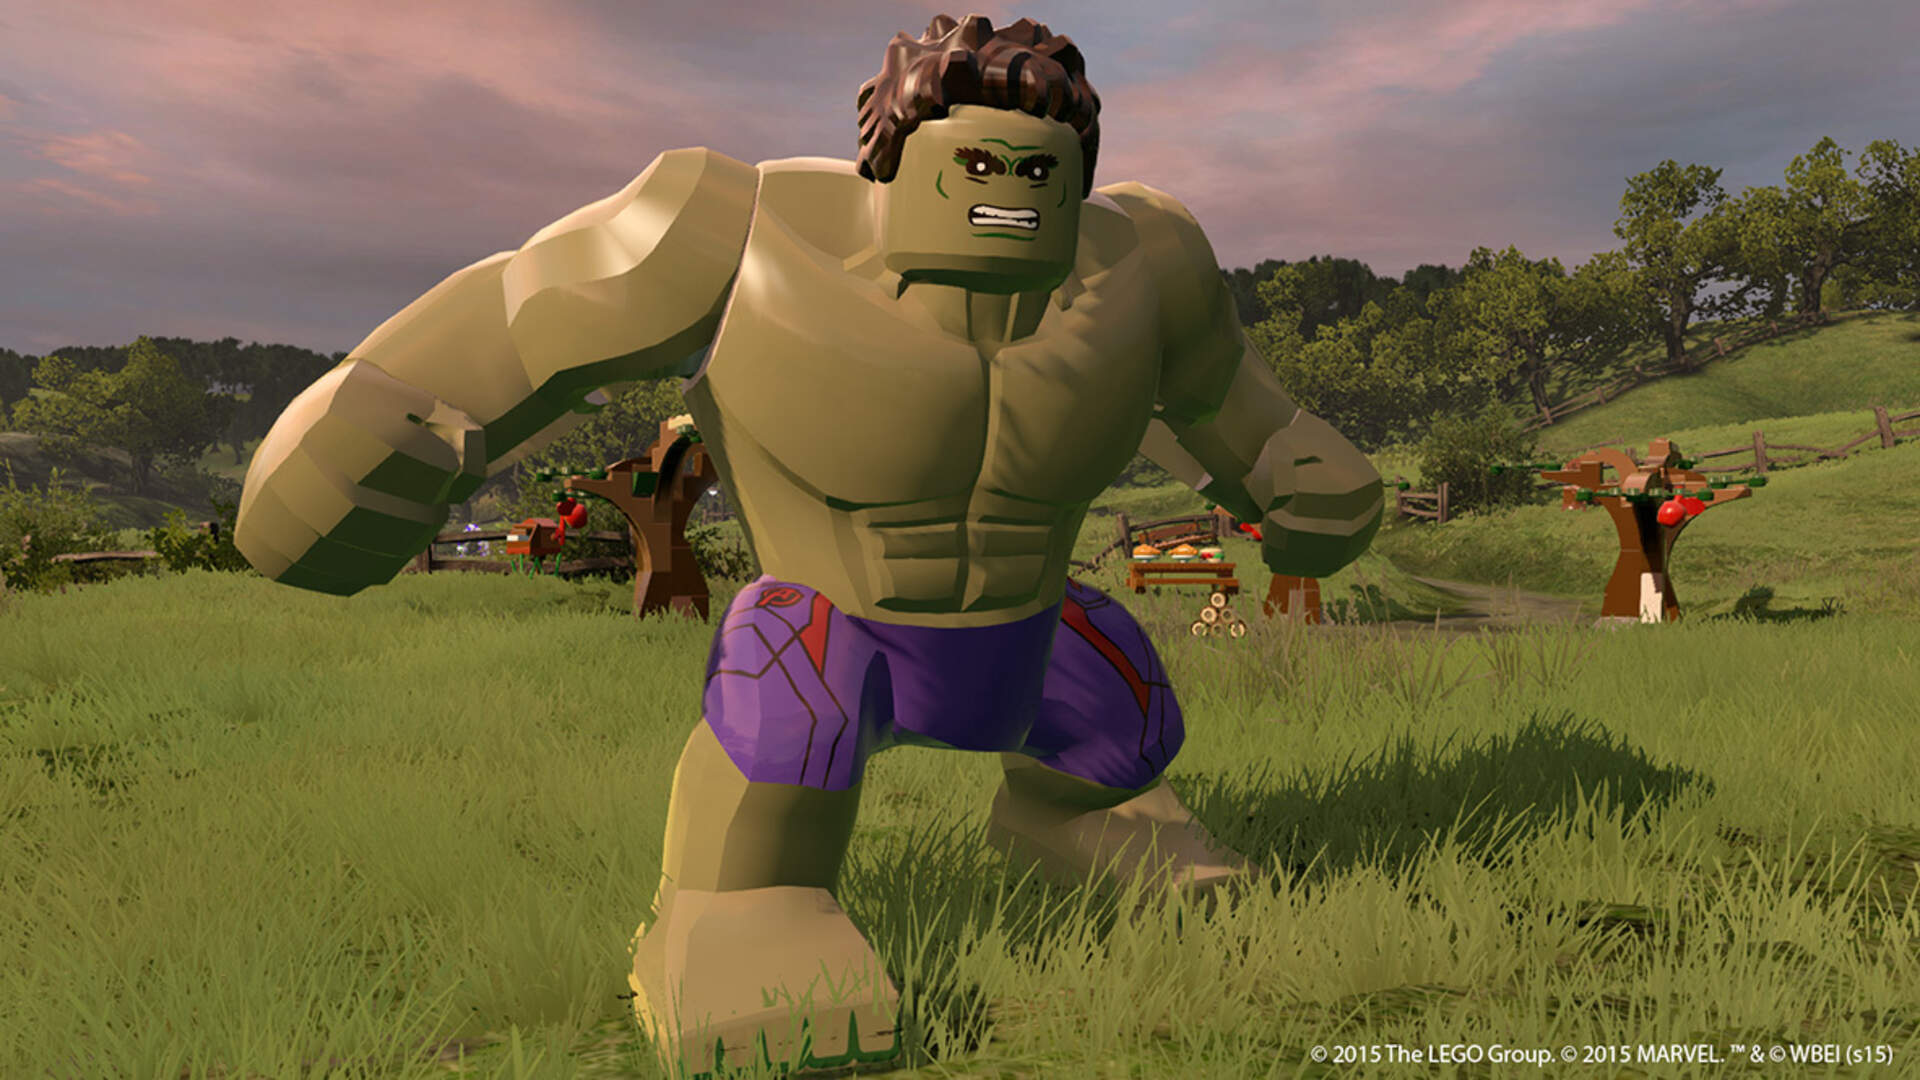 LEGO Marvel Avengers Cheats, Character Unlock Codes, and Stud Unlocks